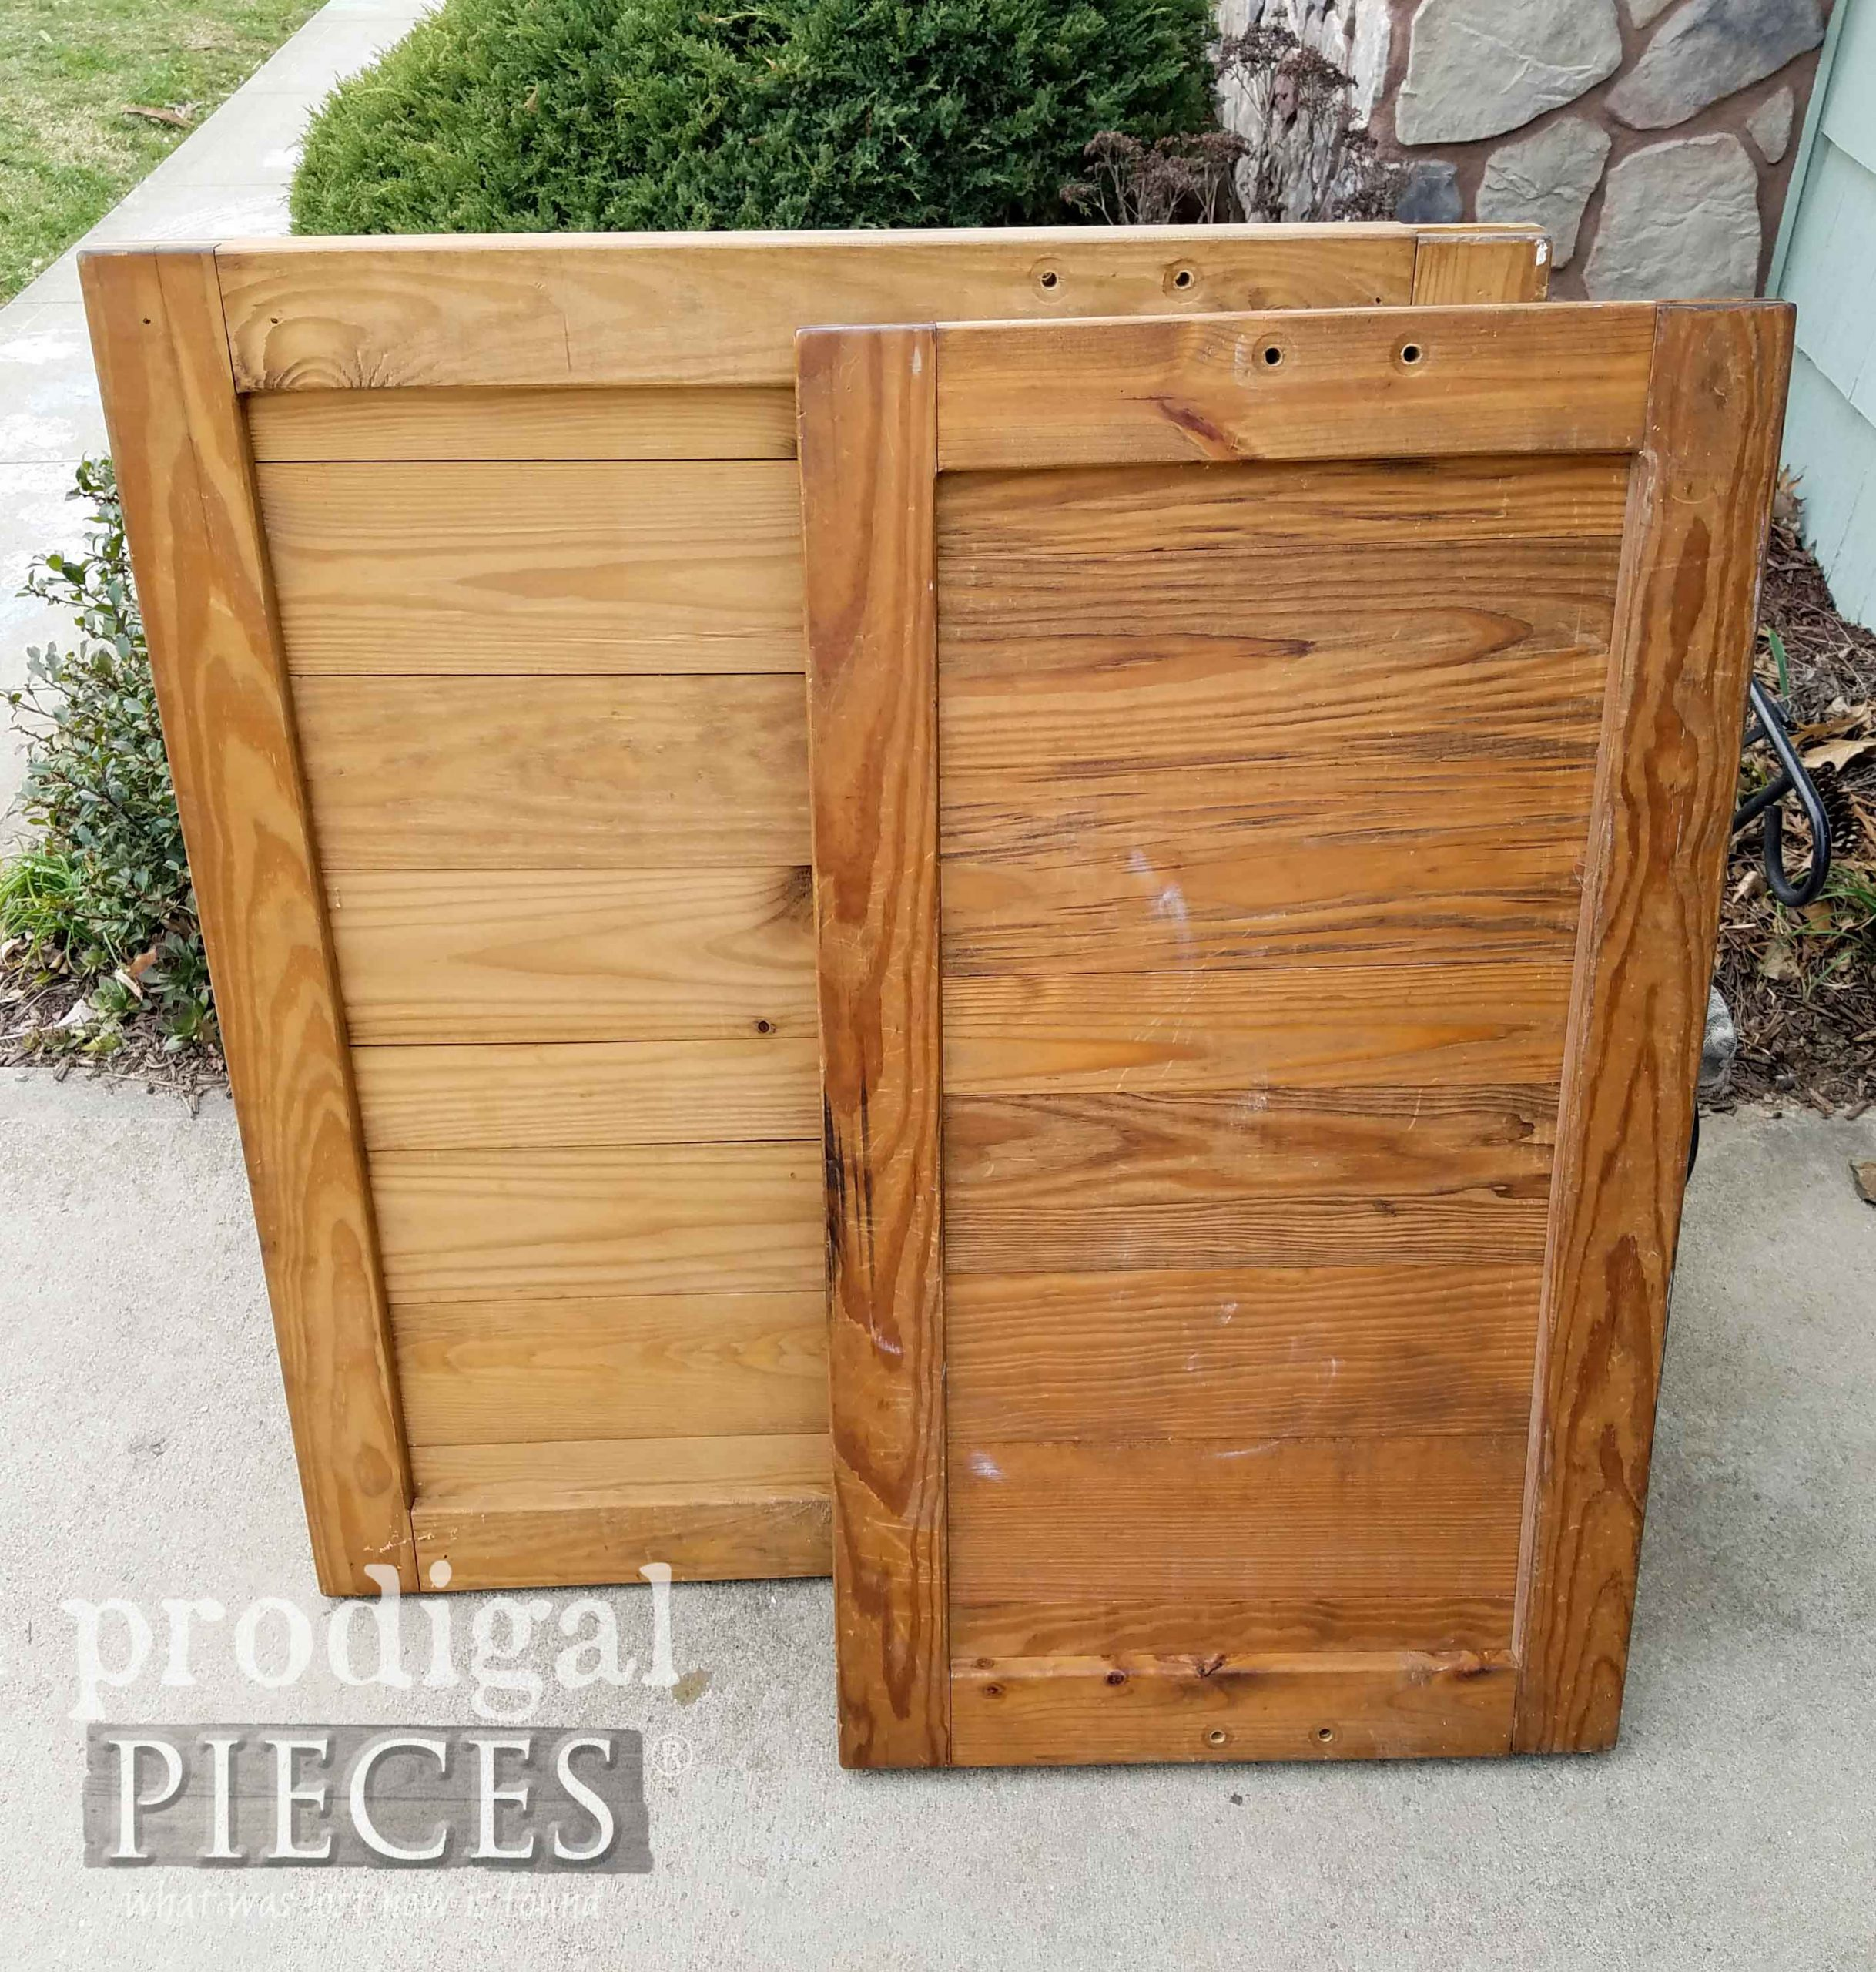 Reclaimed Wood Before Upcycle by Prodigal Pieces   prodigalpieces.com #prodigalpieces